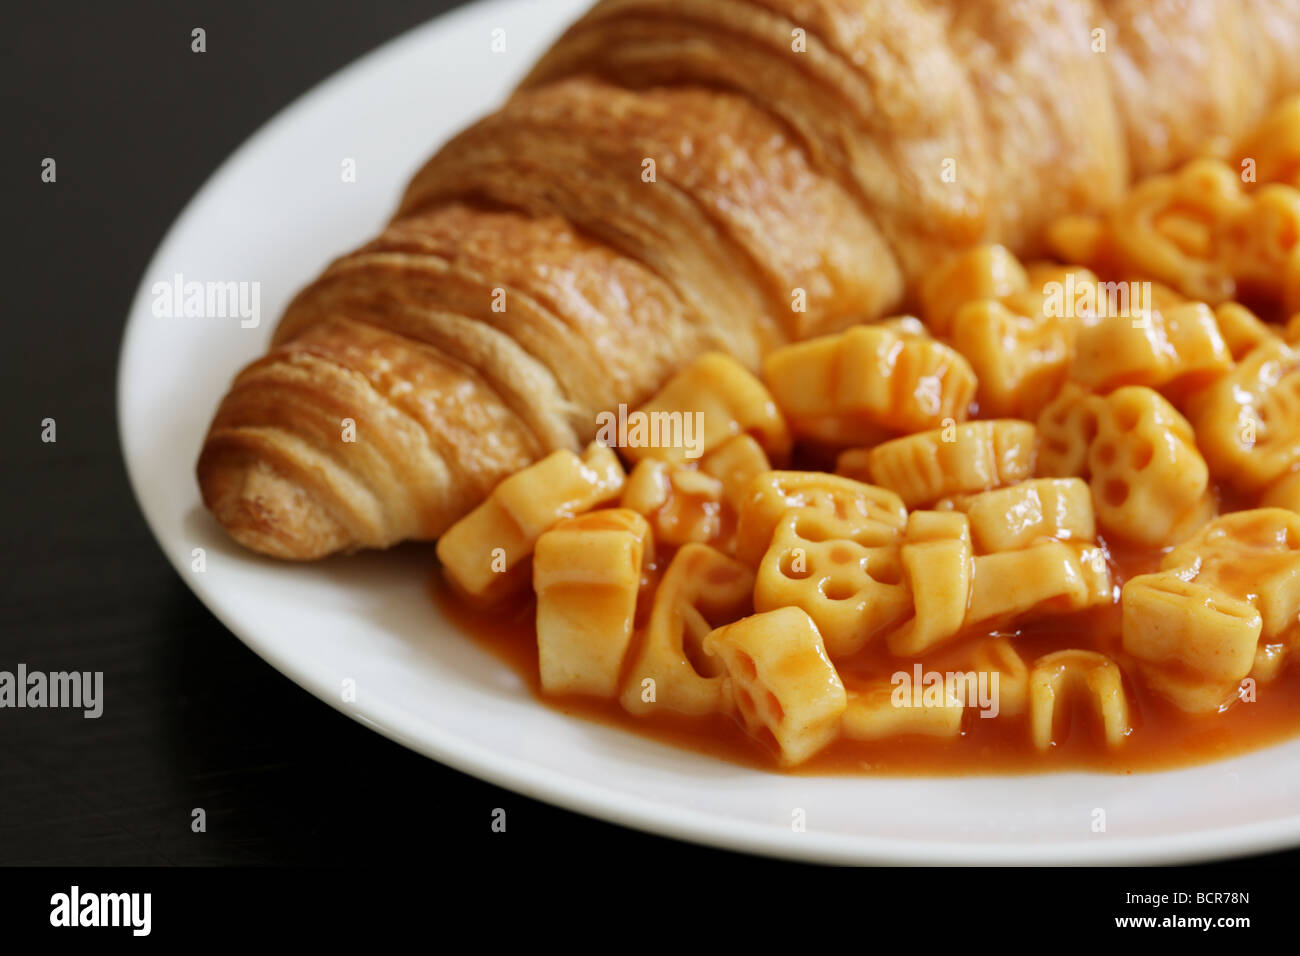 Croissant with Pasta Shapes - Stock Image